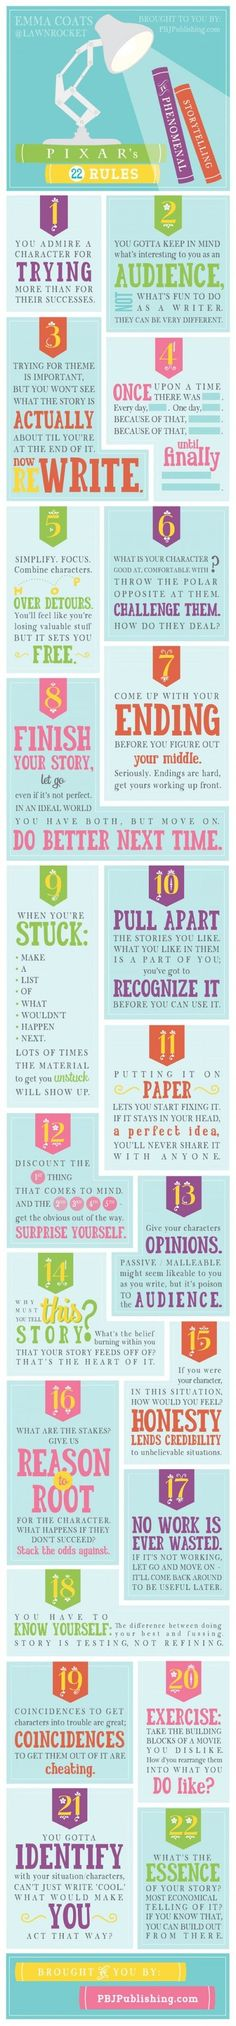 Pixar's 22 rules of storytelling. Great to think about in the context of a skit, video, or preference ceremony.